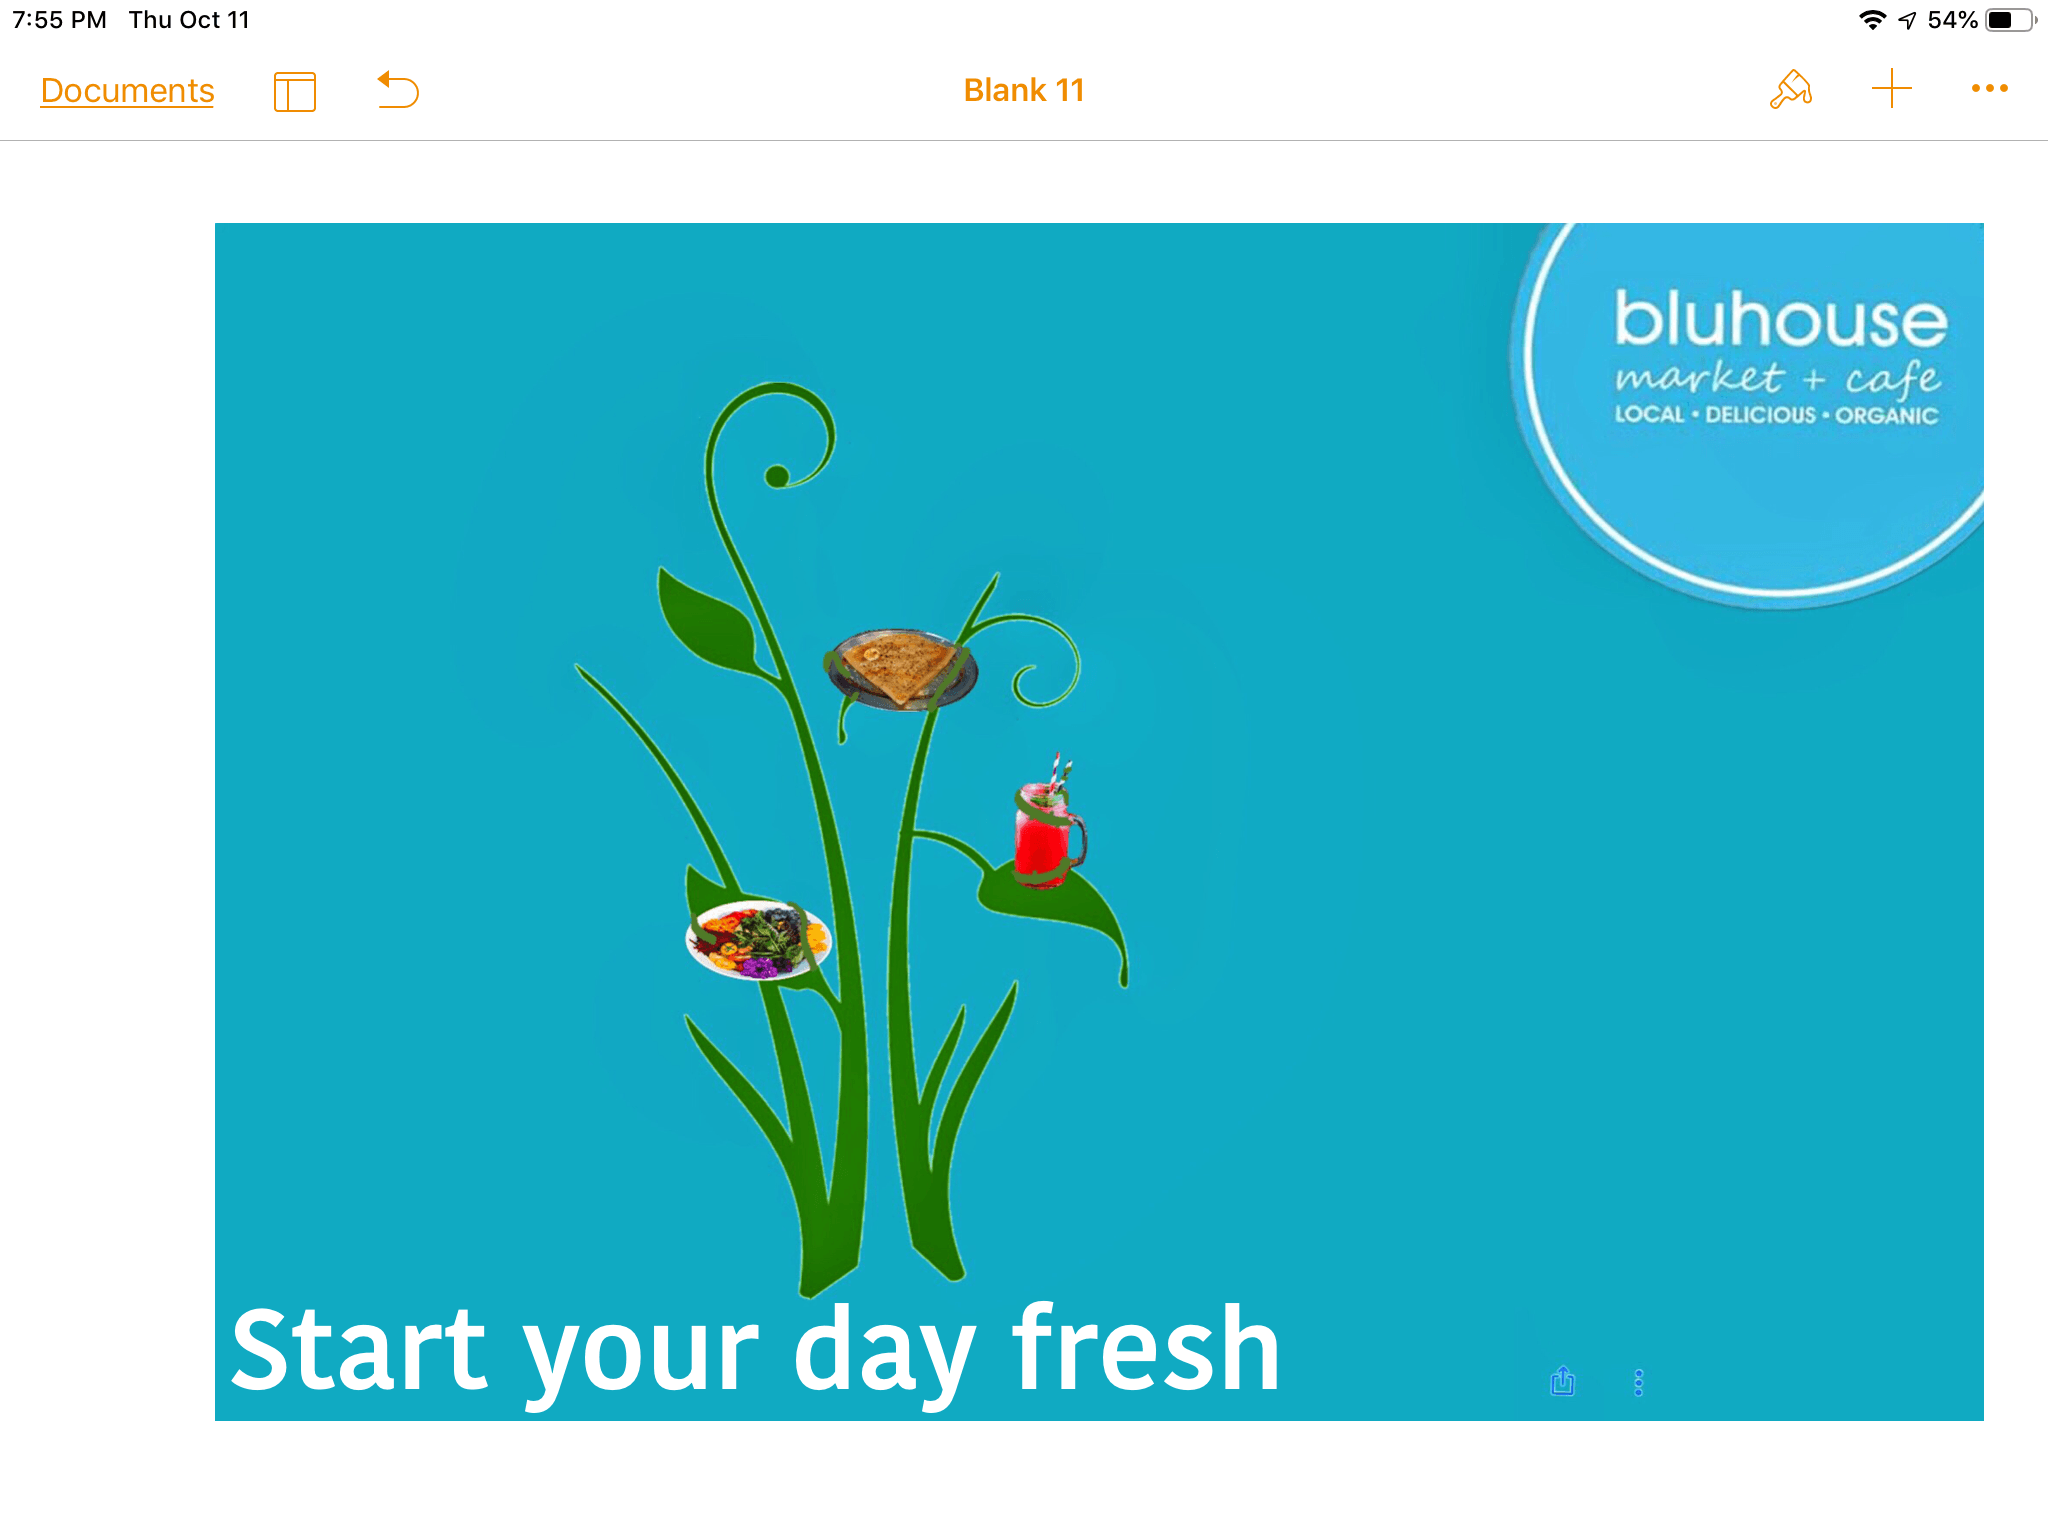 Start your day fresh bluhouse ad